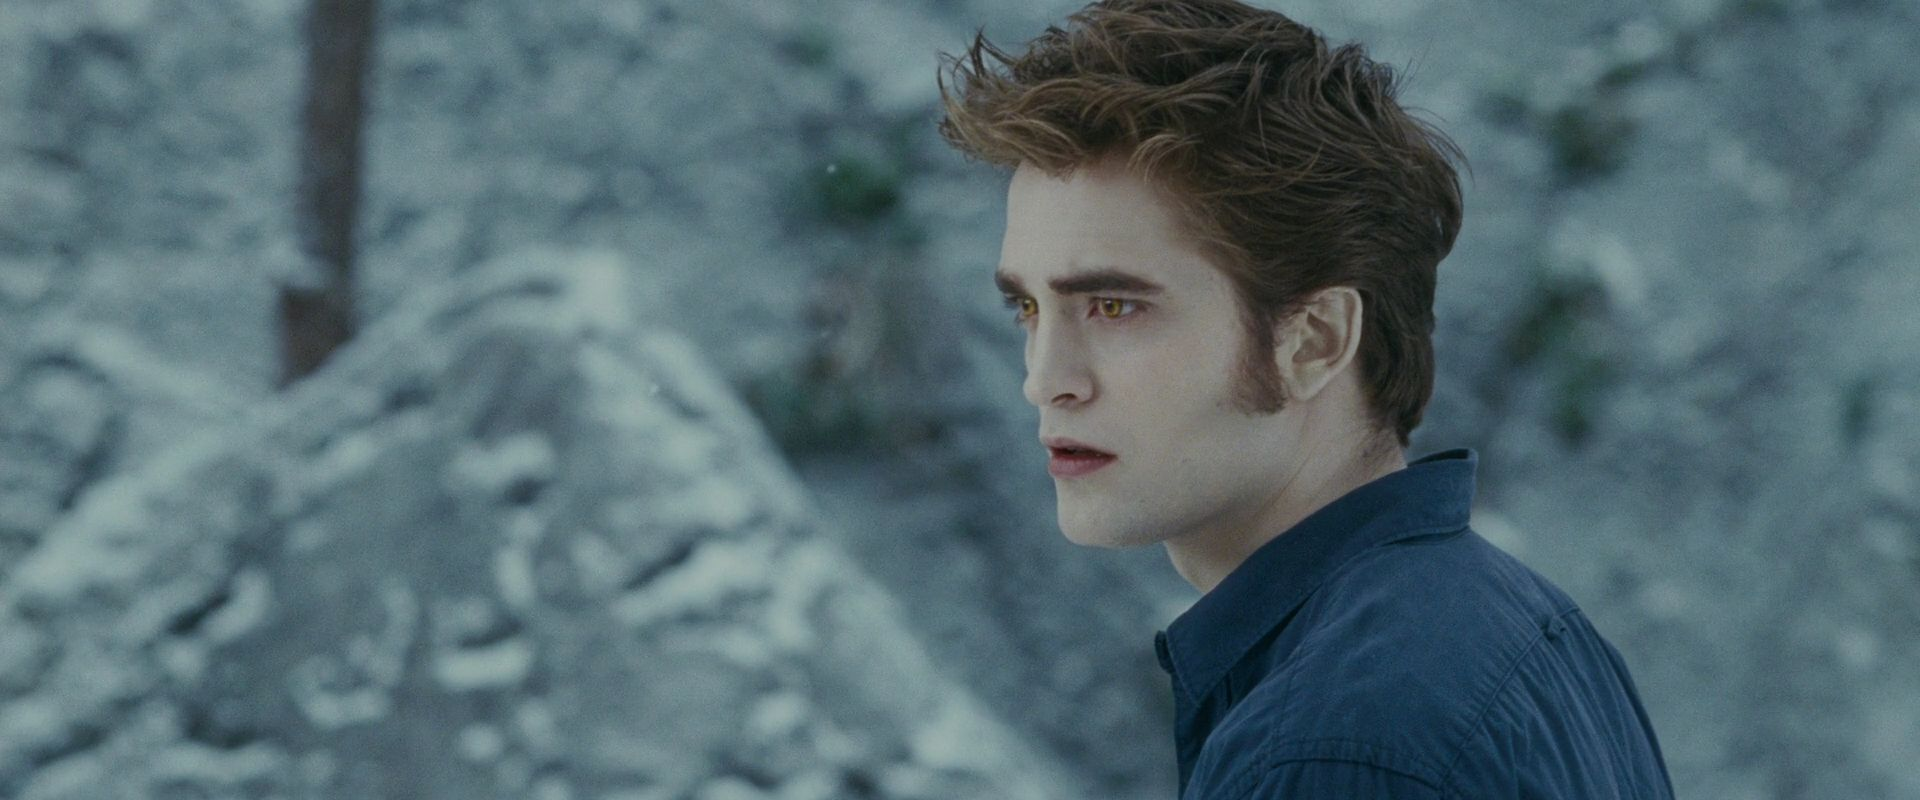 Edward Cullen - Edward Cullen Photo (18085374) - Fanpop